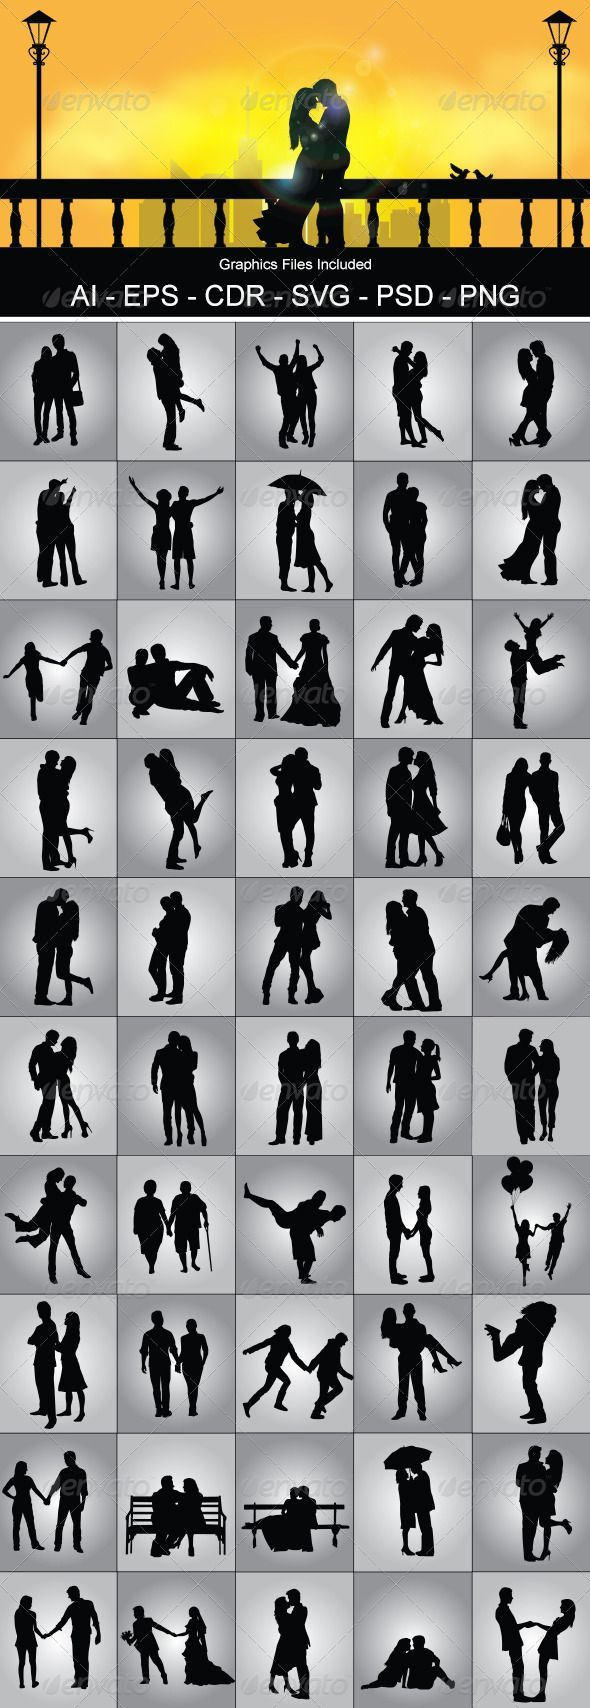 Romantic Couple Silhouette - People Characters I am going to use some of these in my art!